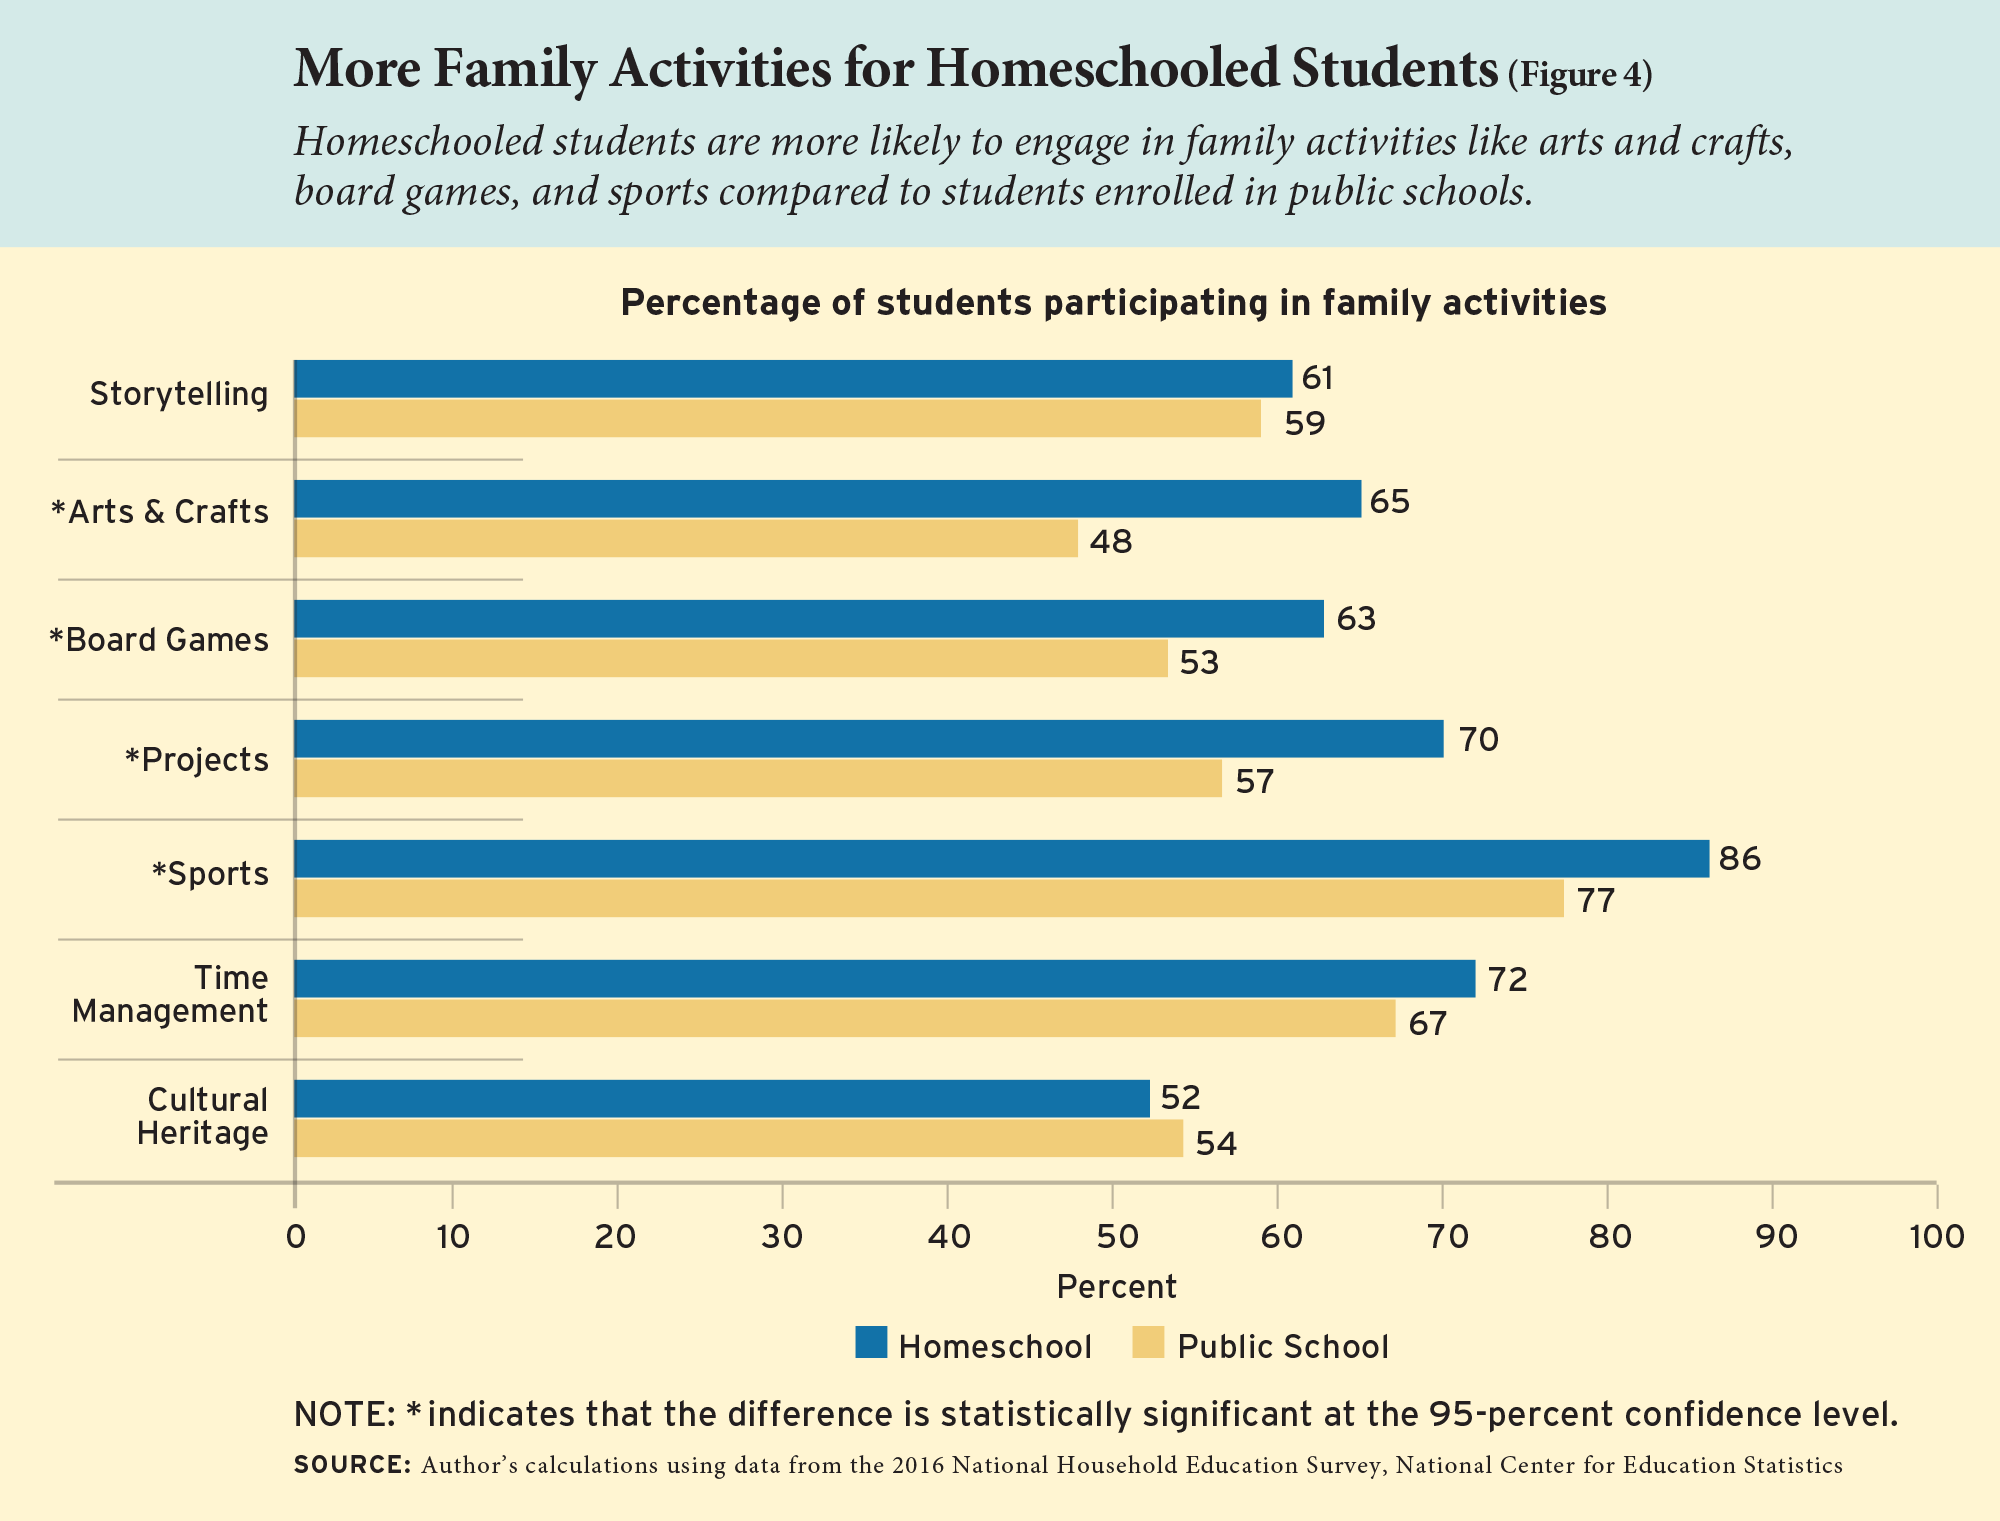 Figure 4: More Family Activities for Homeschooled Students